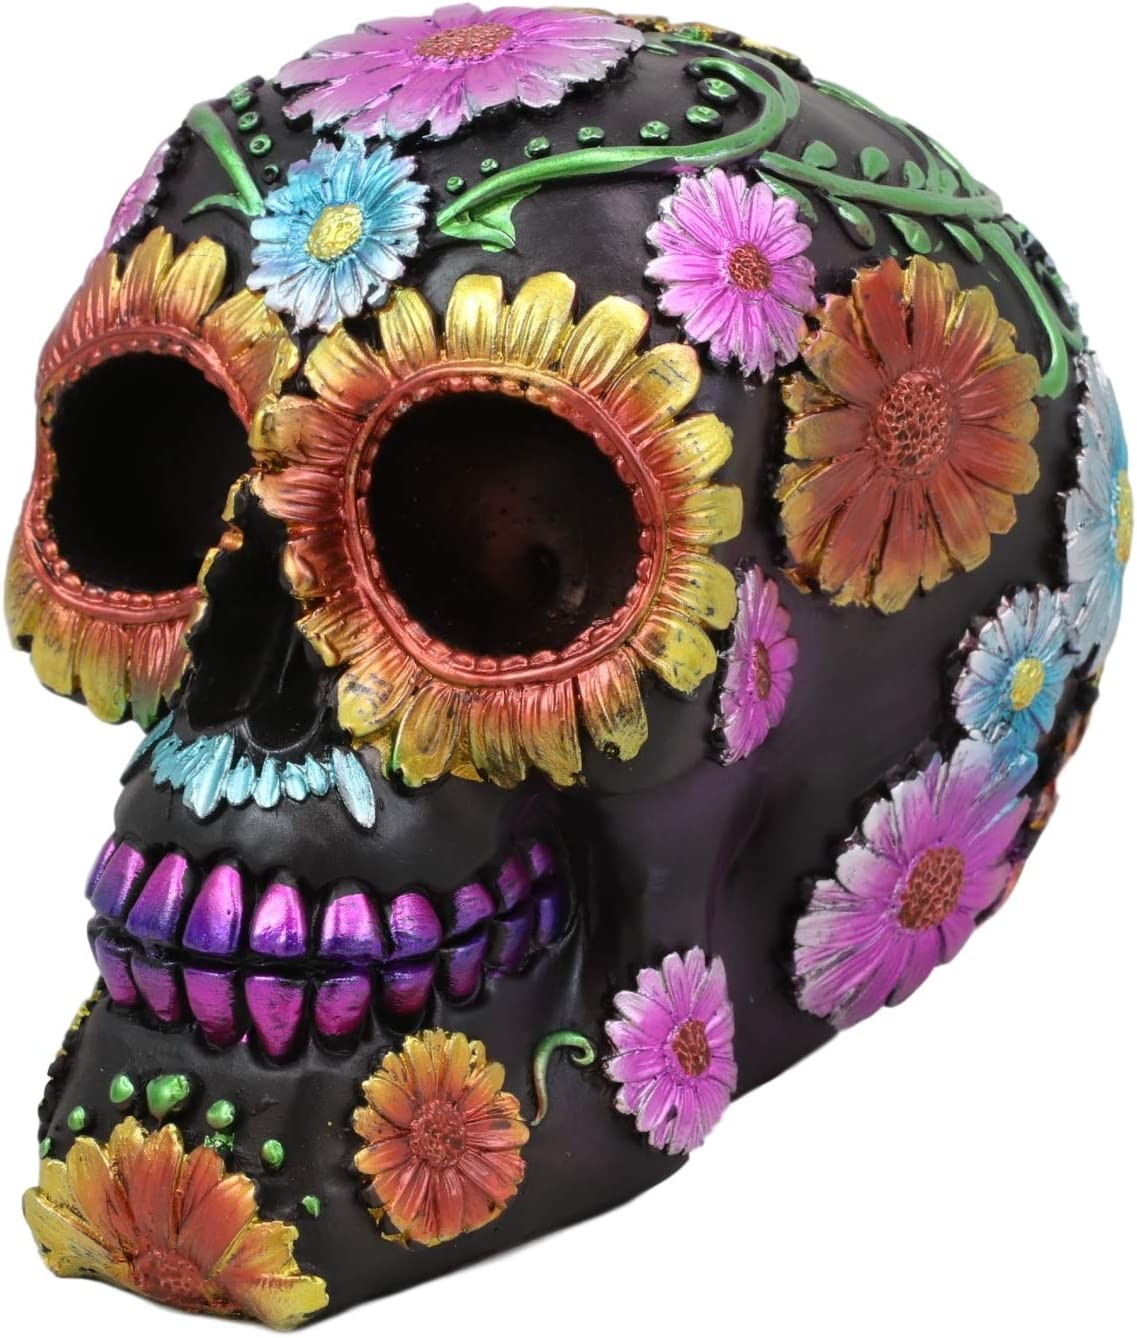 """Ebros Black Day of The Dead Floral Blooms Sugar Skull Figurine DOD Skulls Statue 6"""" Long As Halloween Ossuary Macabre Decor Collectible (Spring Colorful Metallic Yellow Blue and Pink Flowers)"""